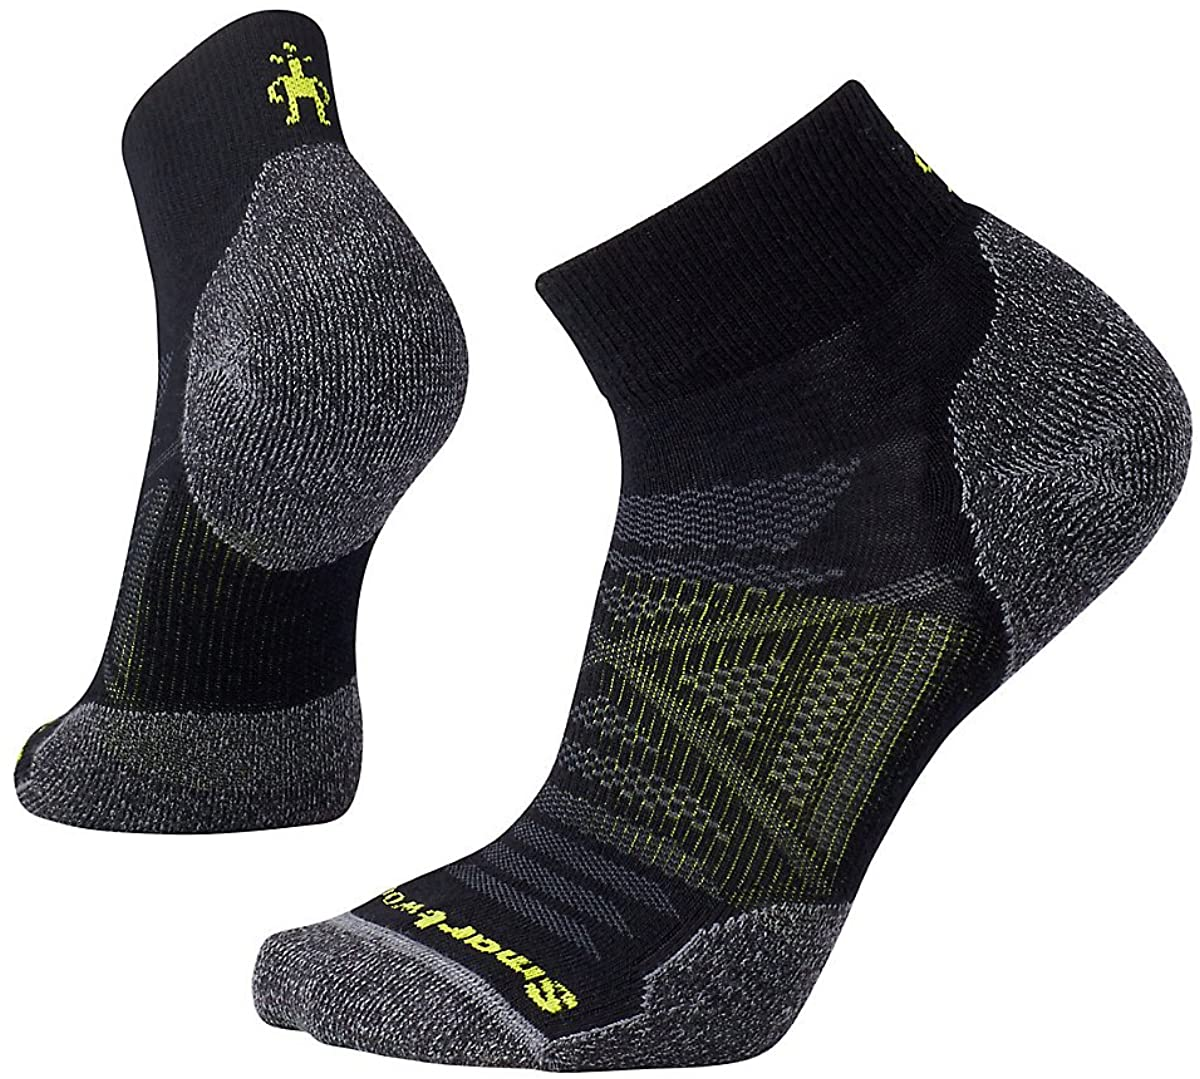 Unisex Smartwool PhD Outdoor Light Mini Hiking Socks in Medium Gray from the front view